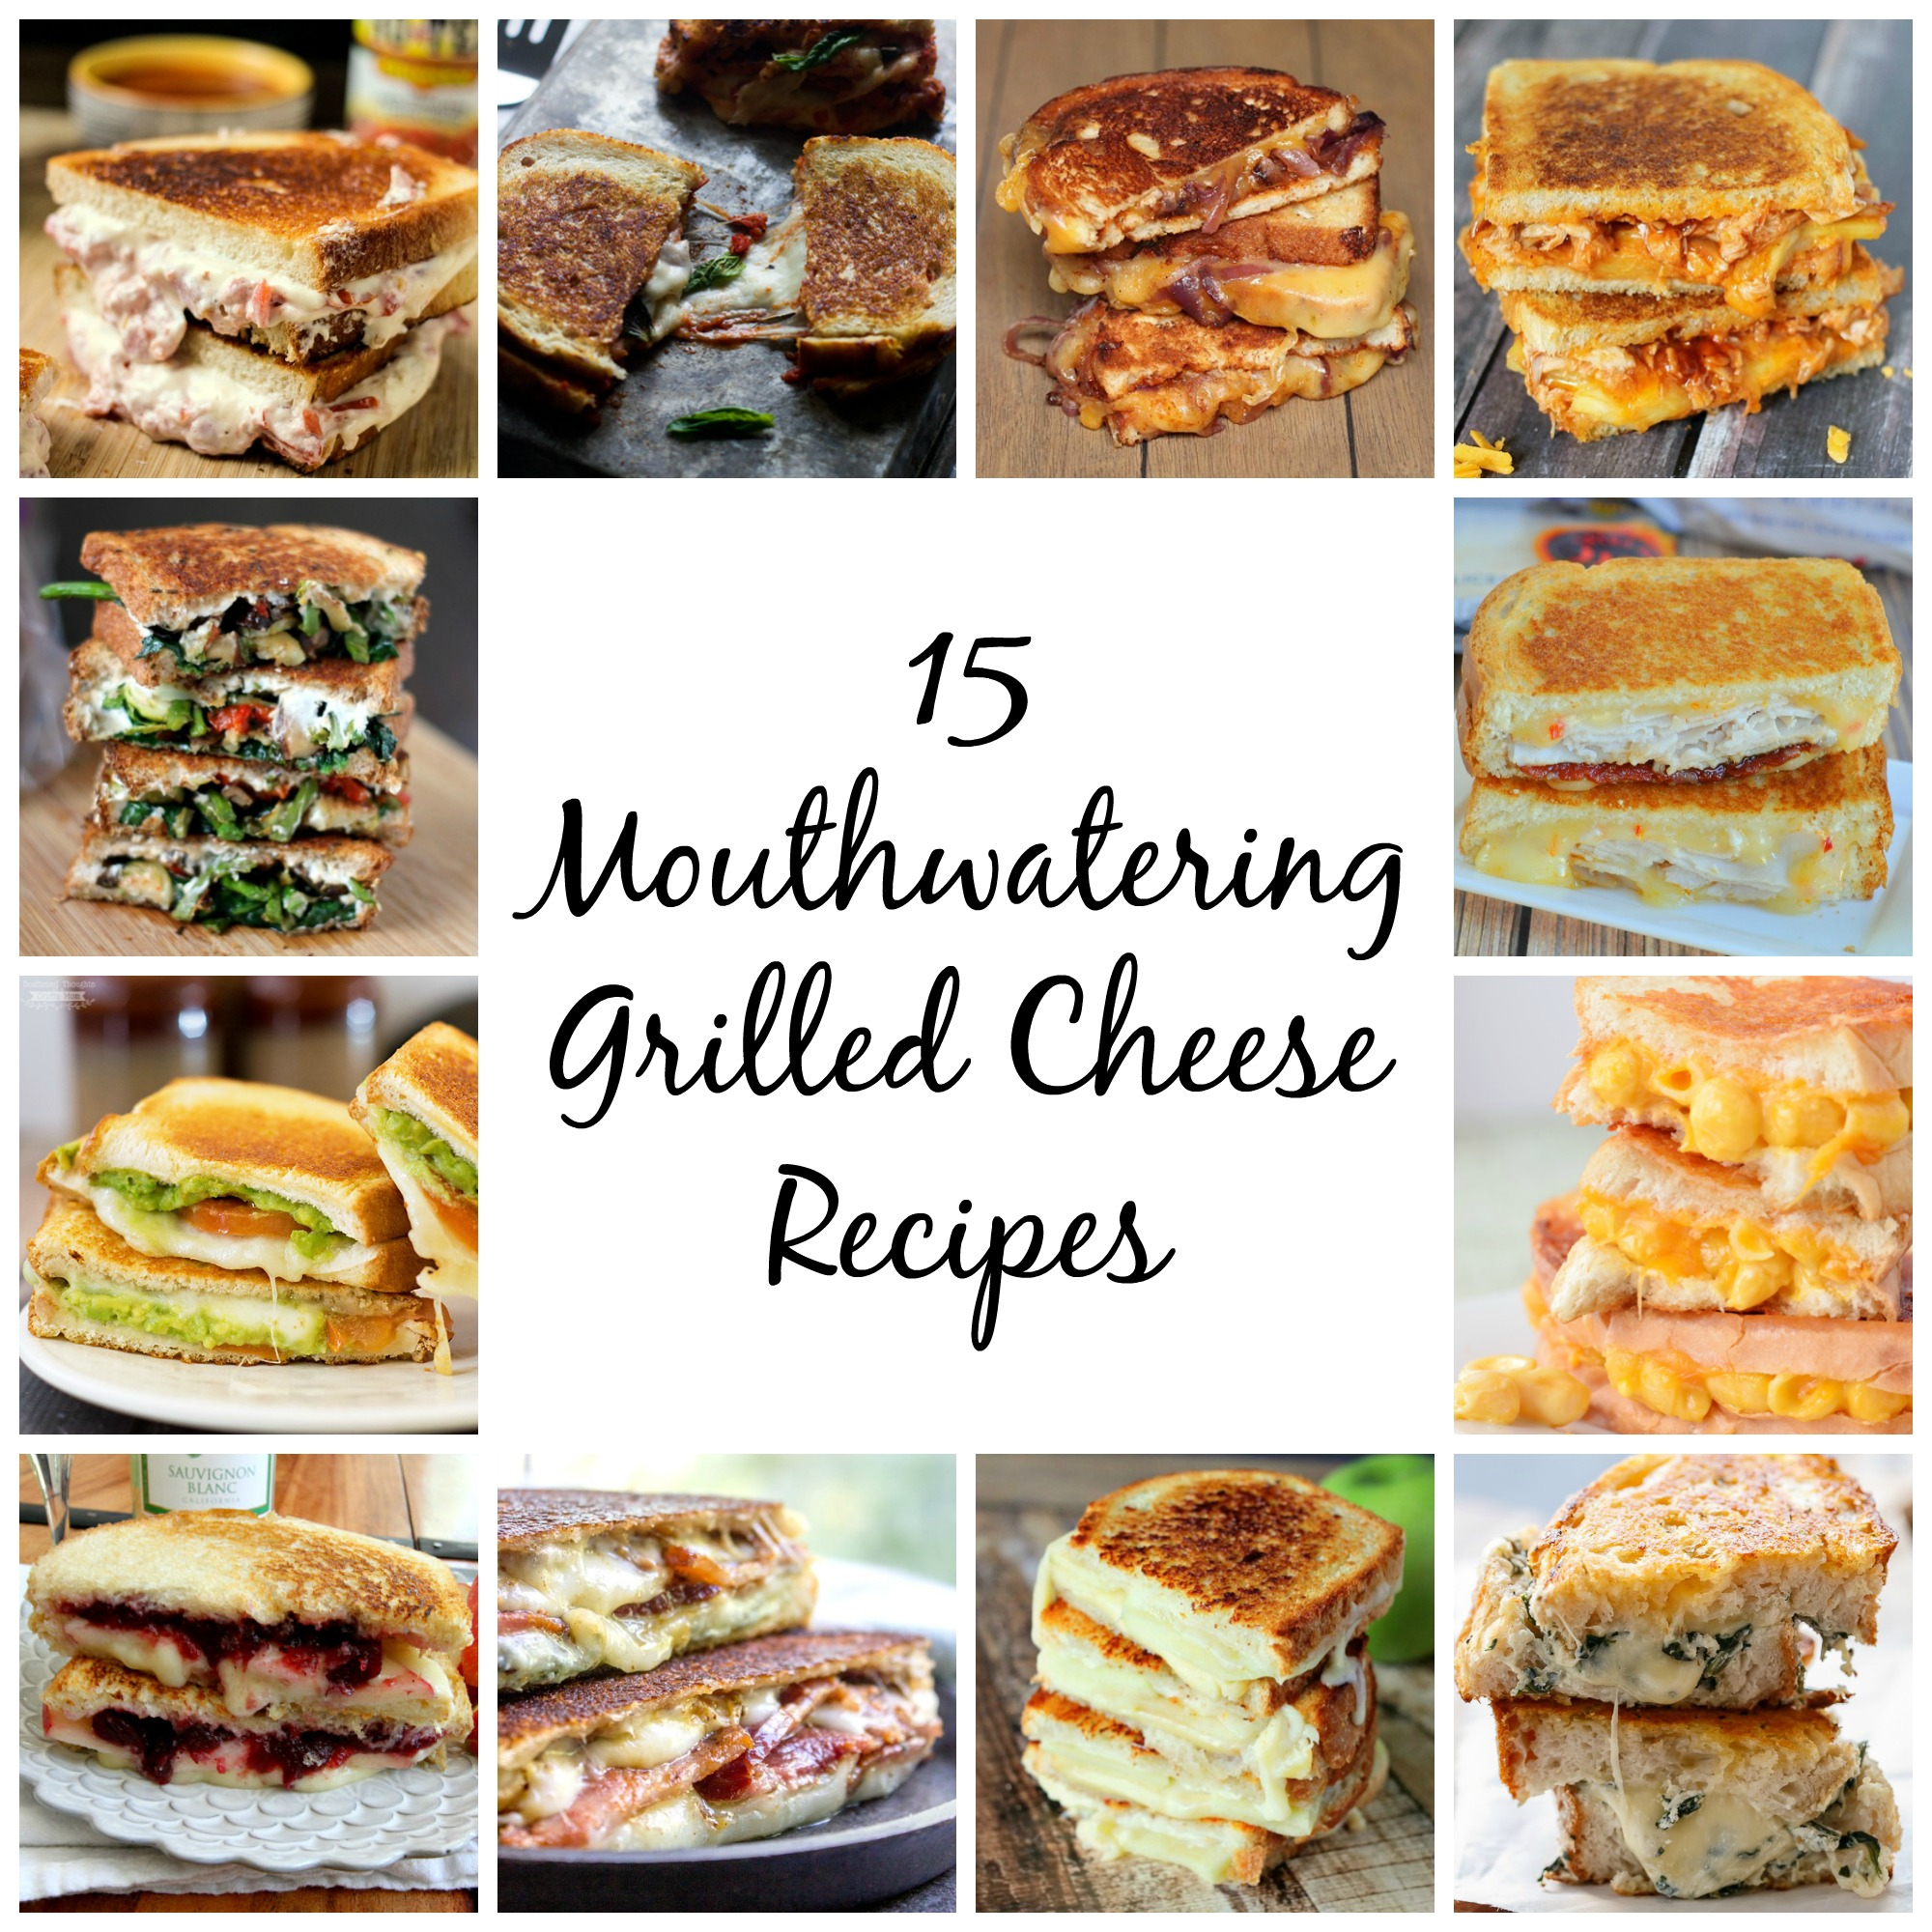 15-mouthwatering-grilled-cheese-recipes-fb